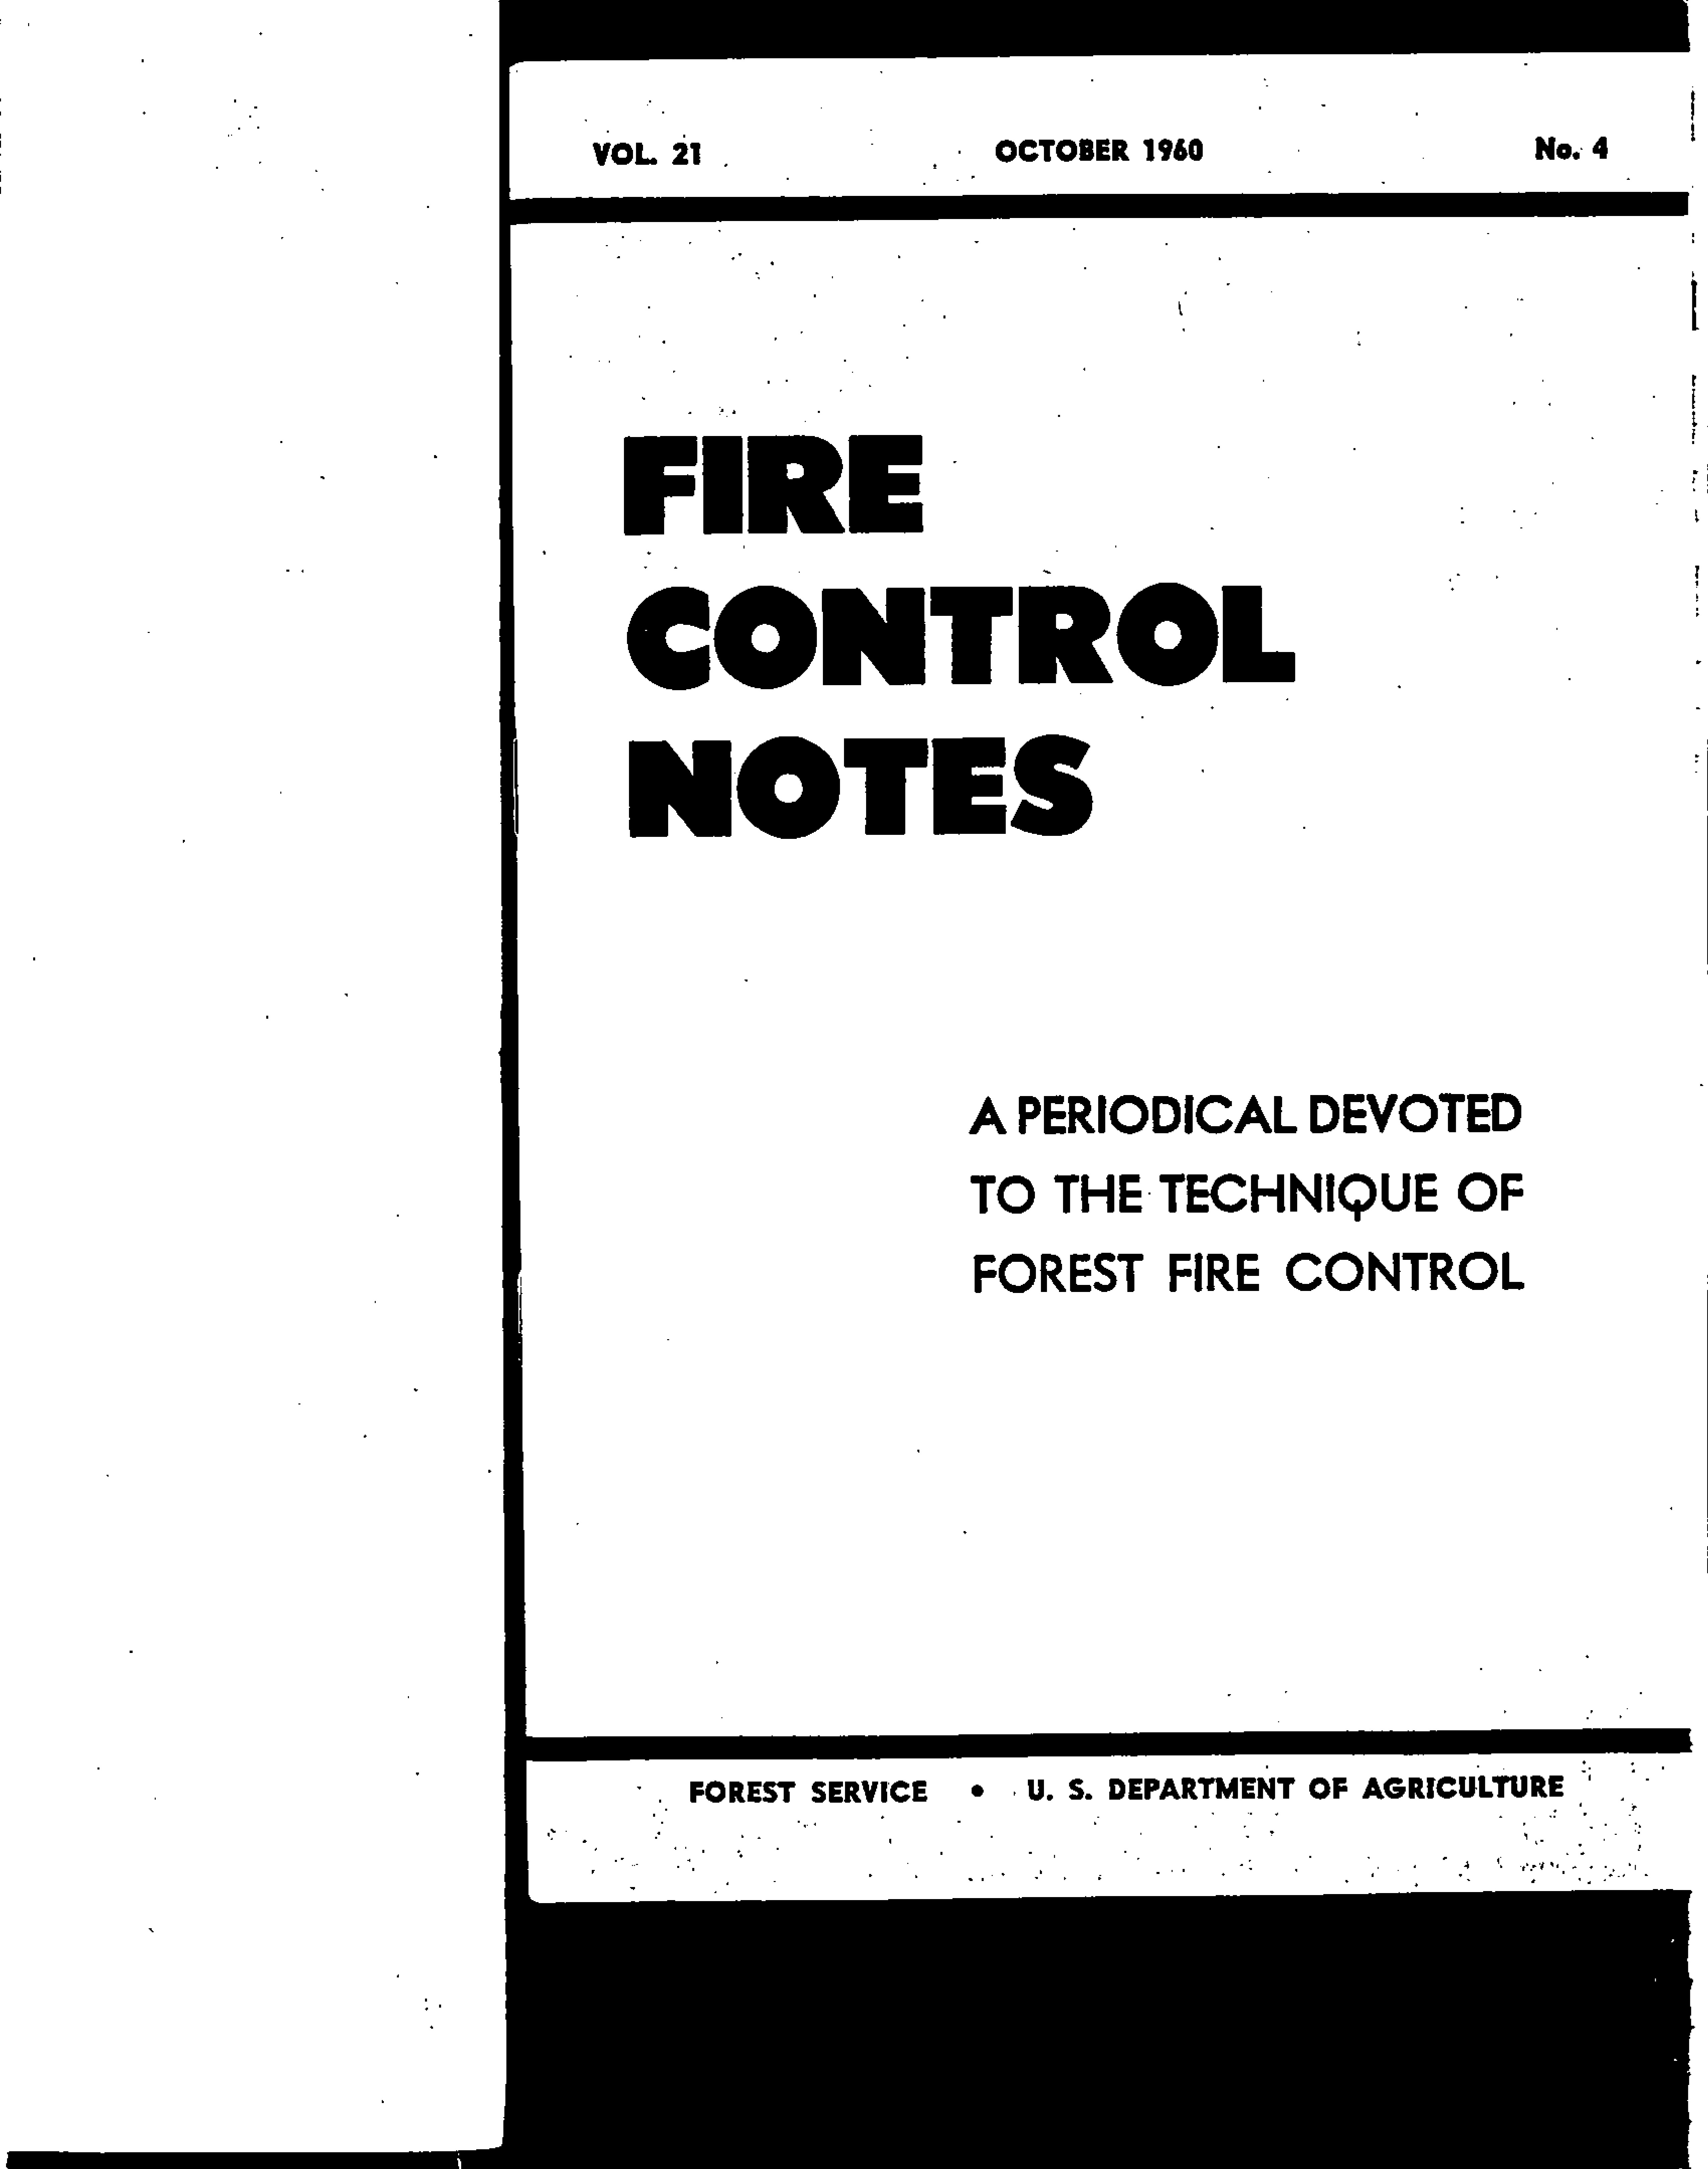 Cover of Fire Management Today Volume 21, Issue 04